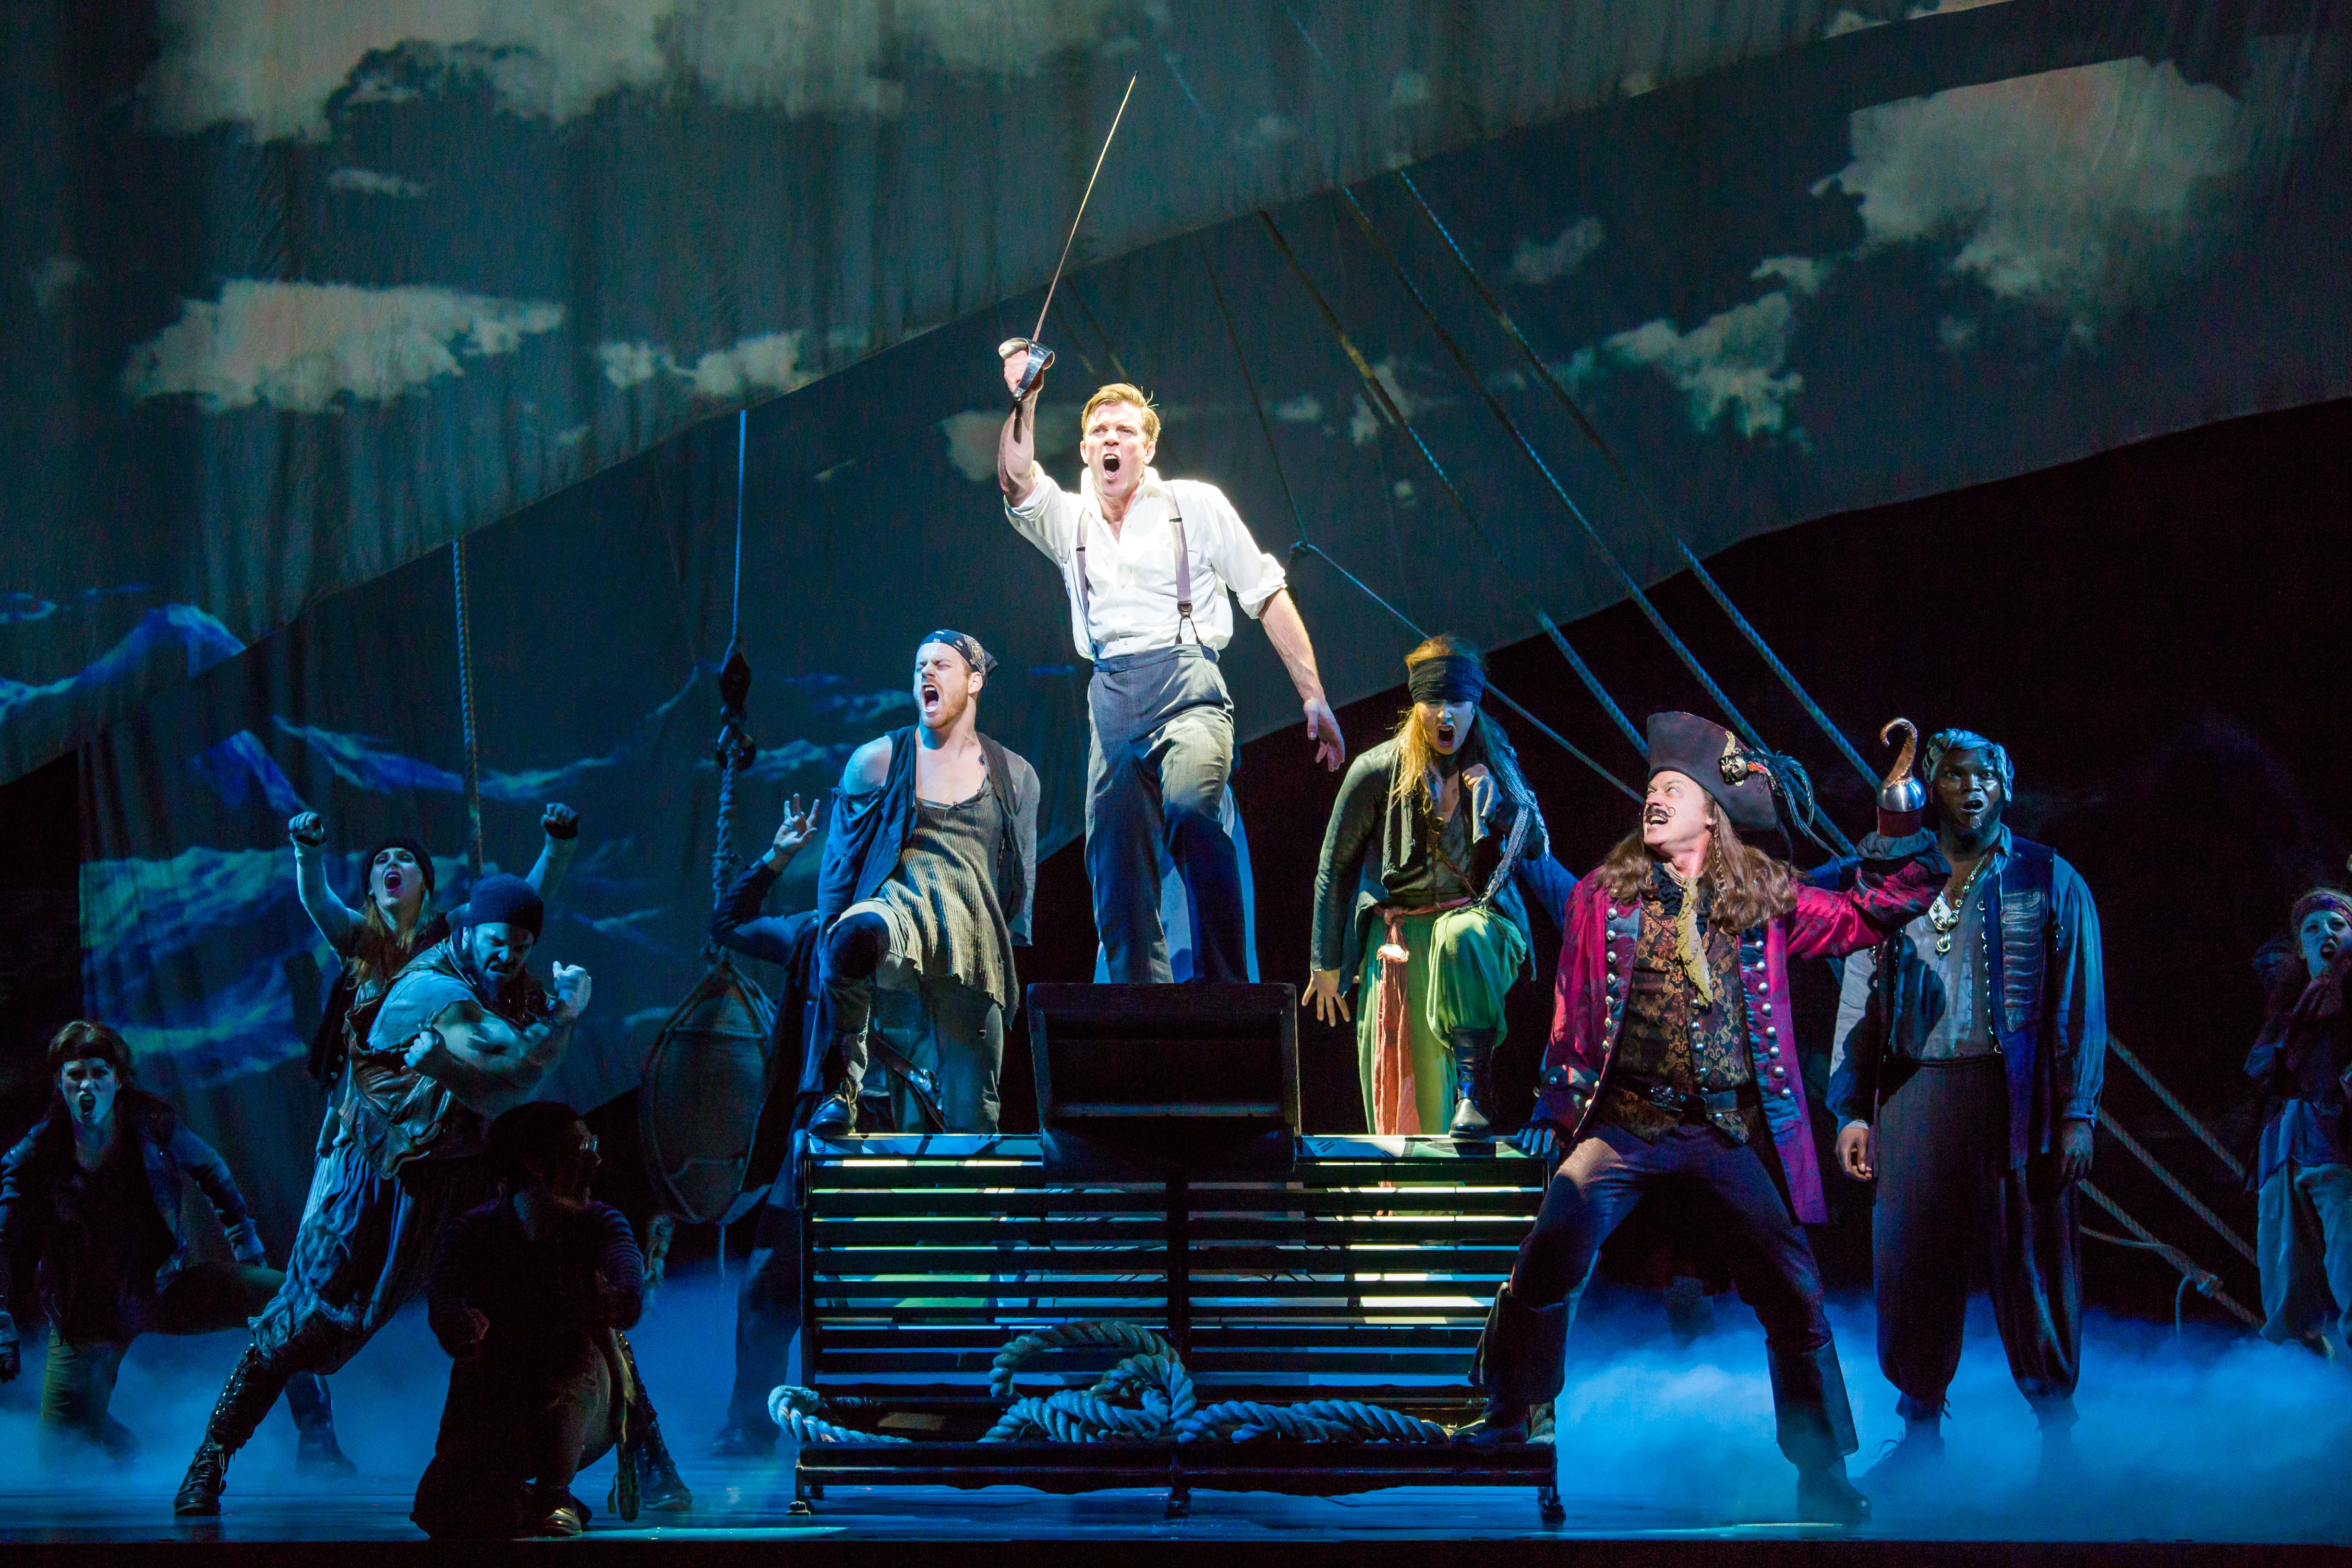 The production of Finding Neverland is full of imagination and fun!